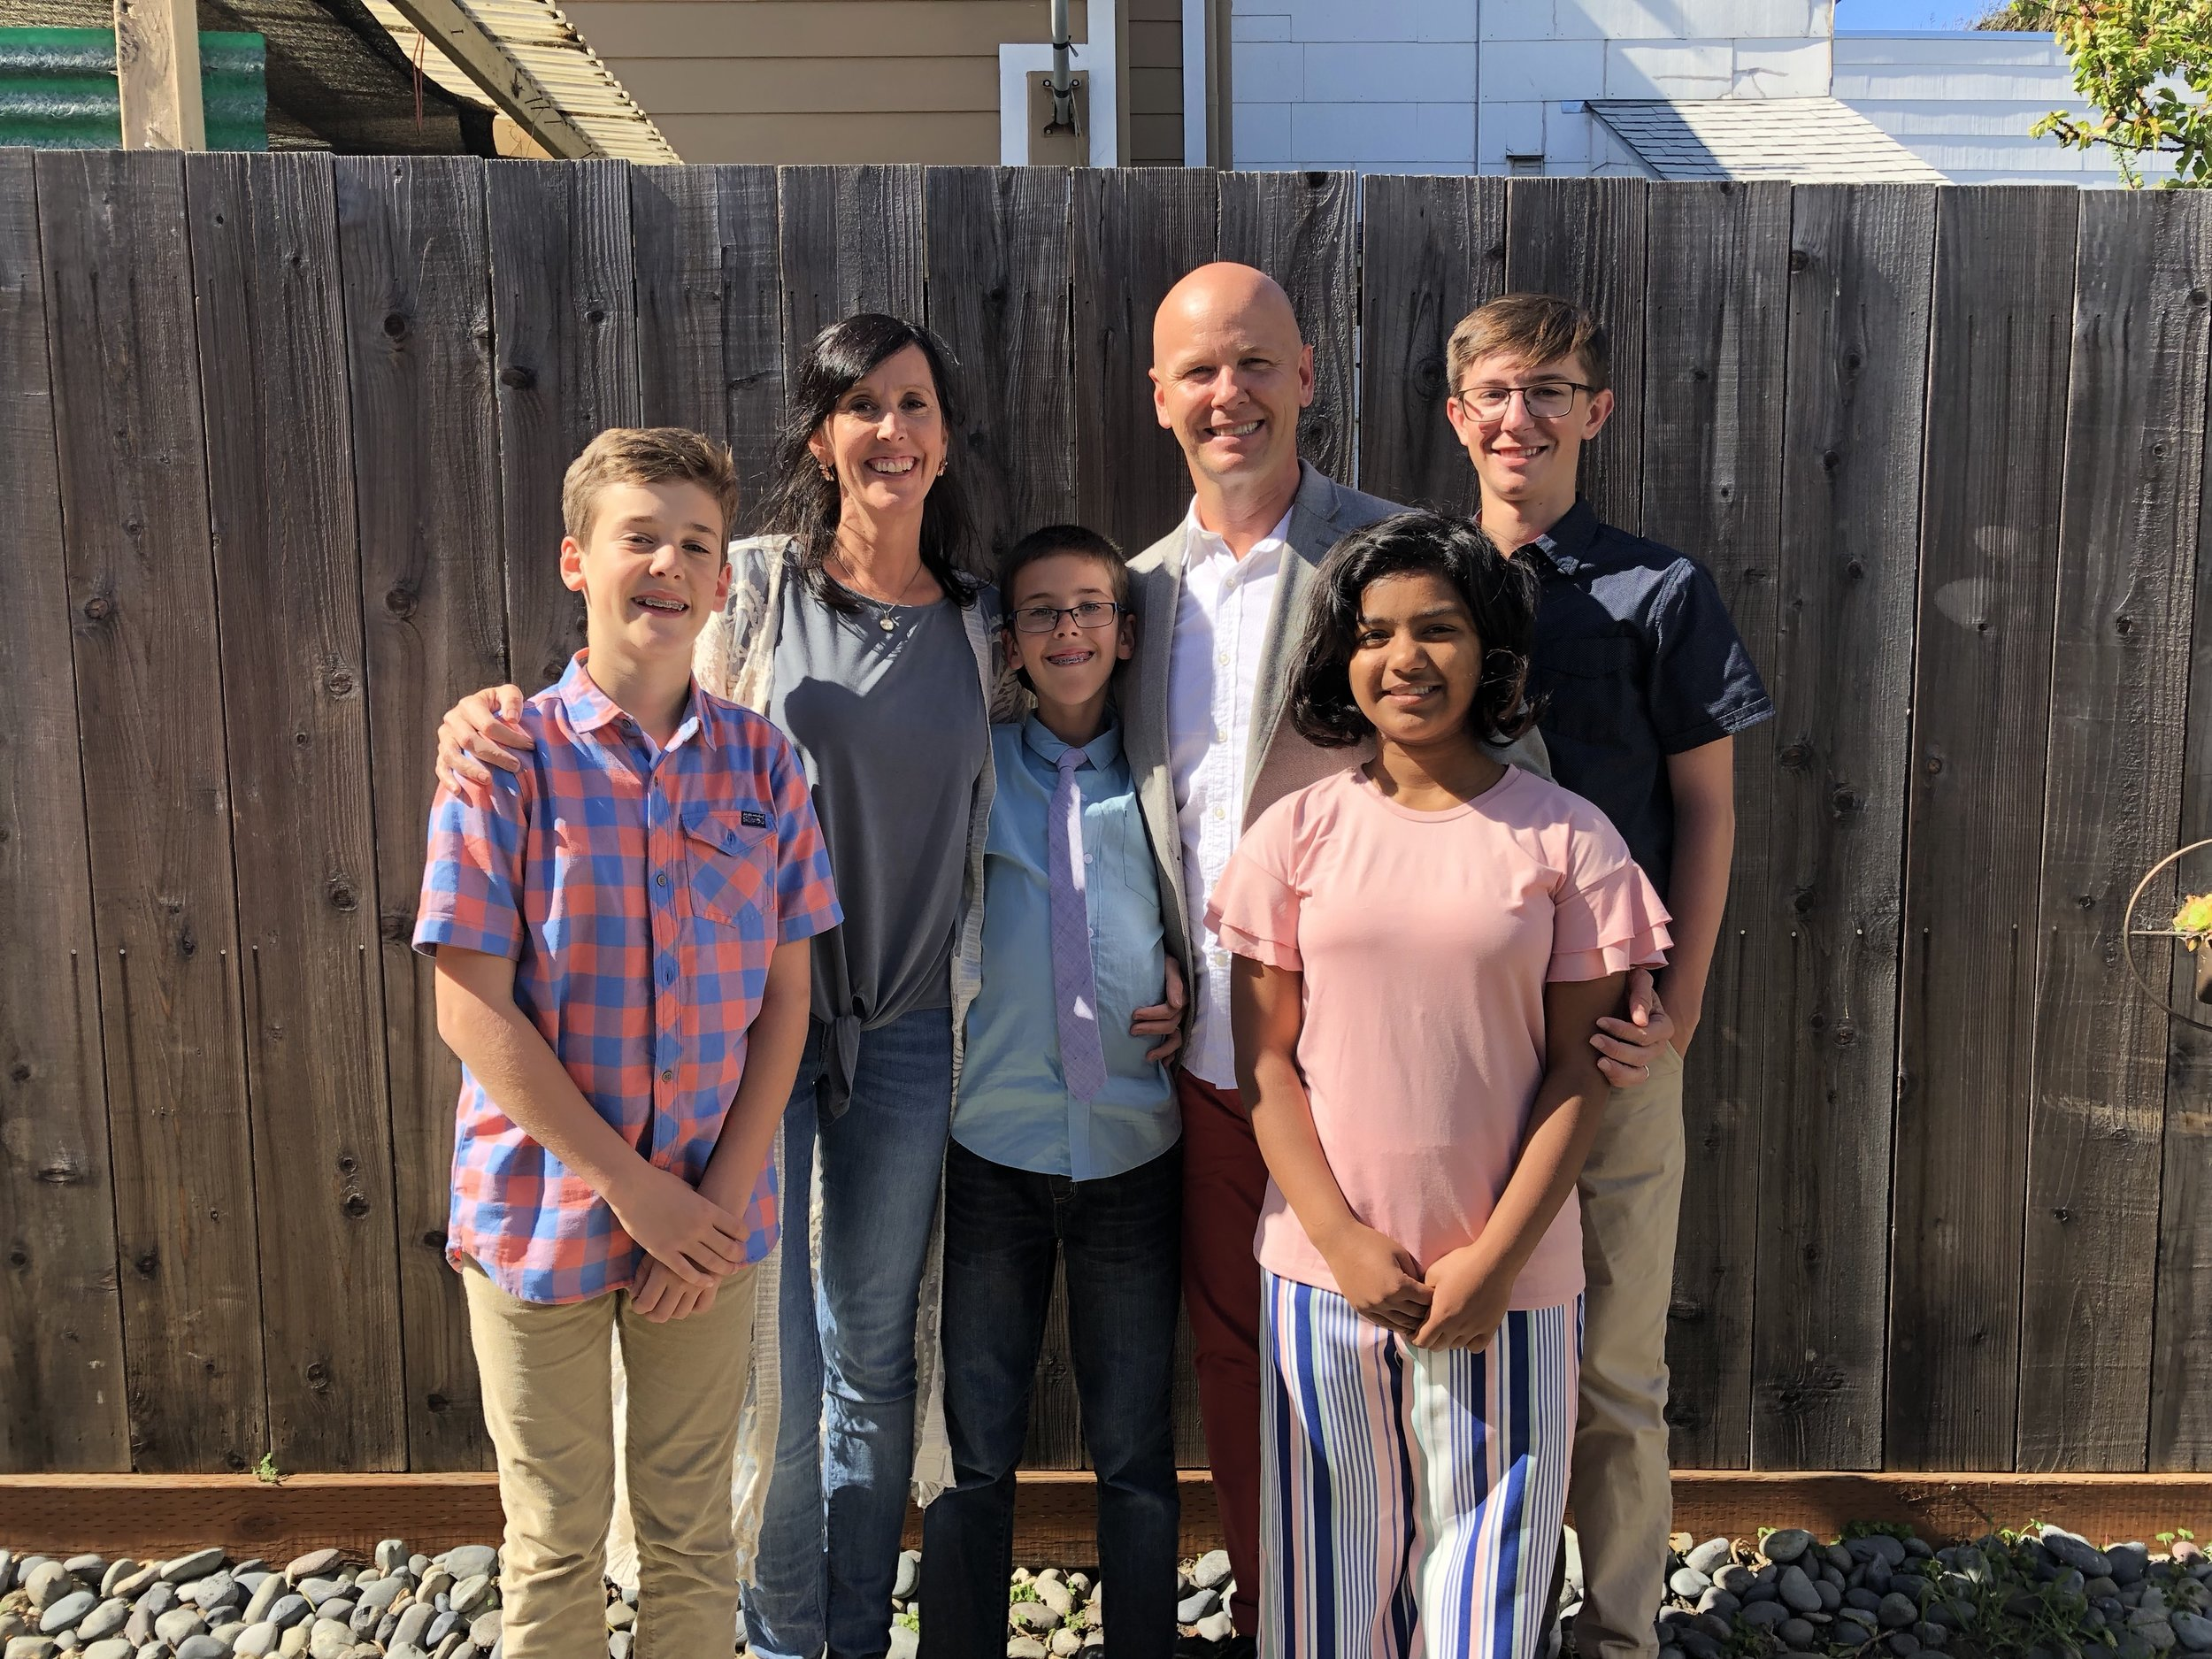 L to R: Samuel (age 13) me, Asher (age 11), Ben (married for 18 years), Kavita (age 13), and Elijah (age 15)